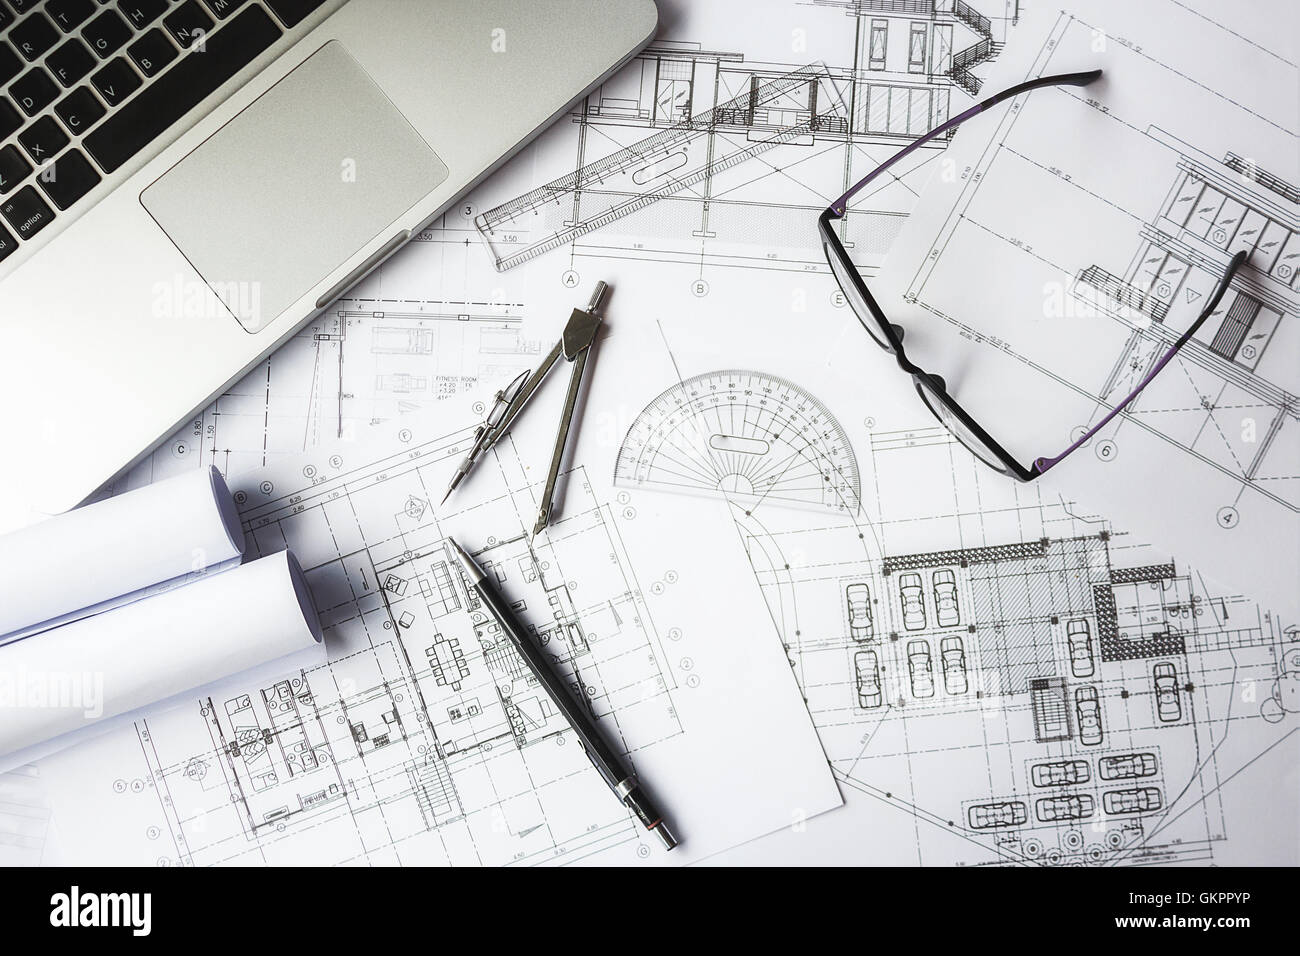 Architect architecture blueprint business businessman candid architect architecture blueprint business businessman candid casual coffee concept construction corporate creative malvernweather Gallery